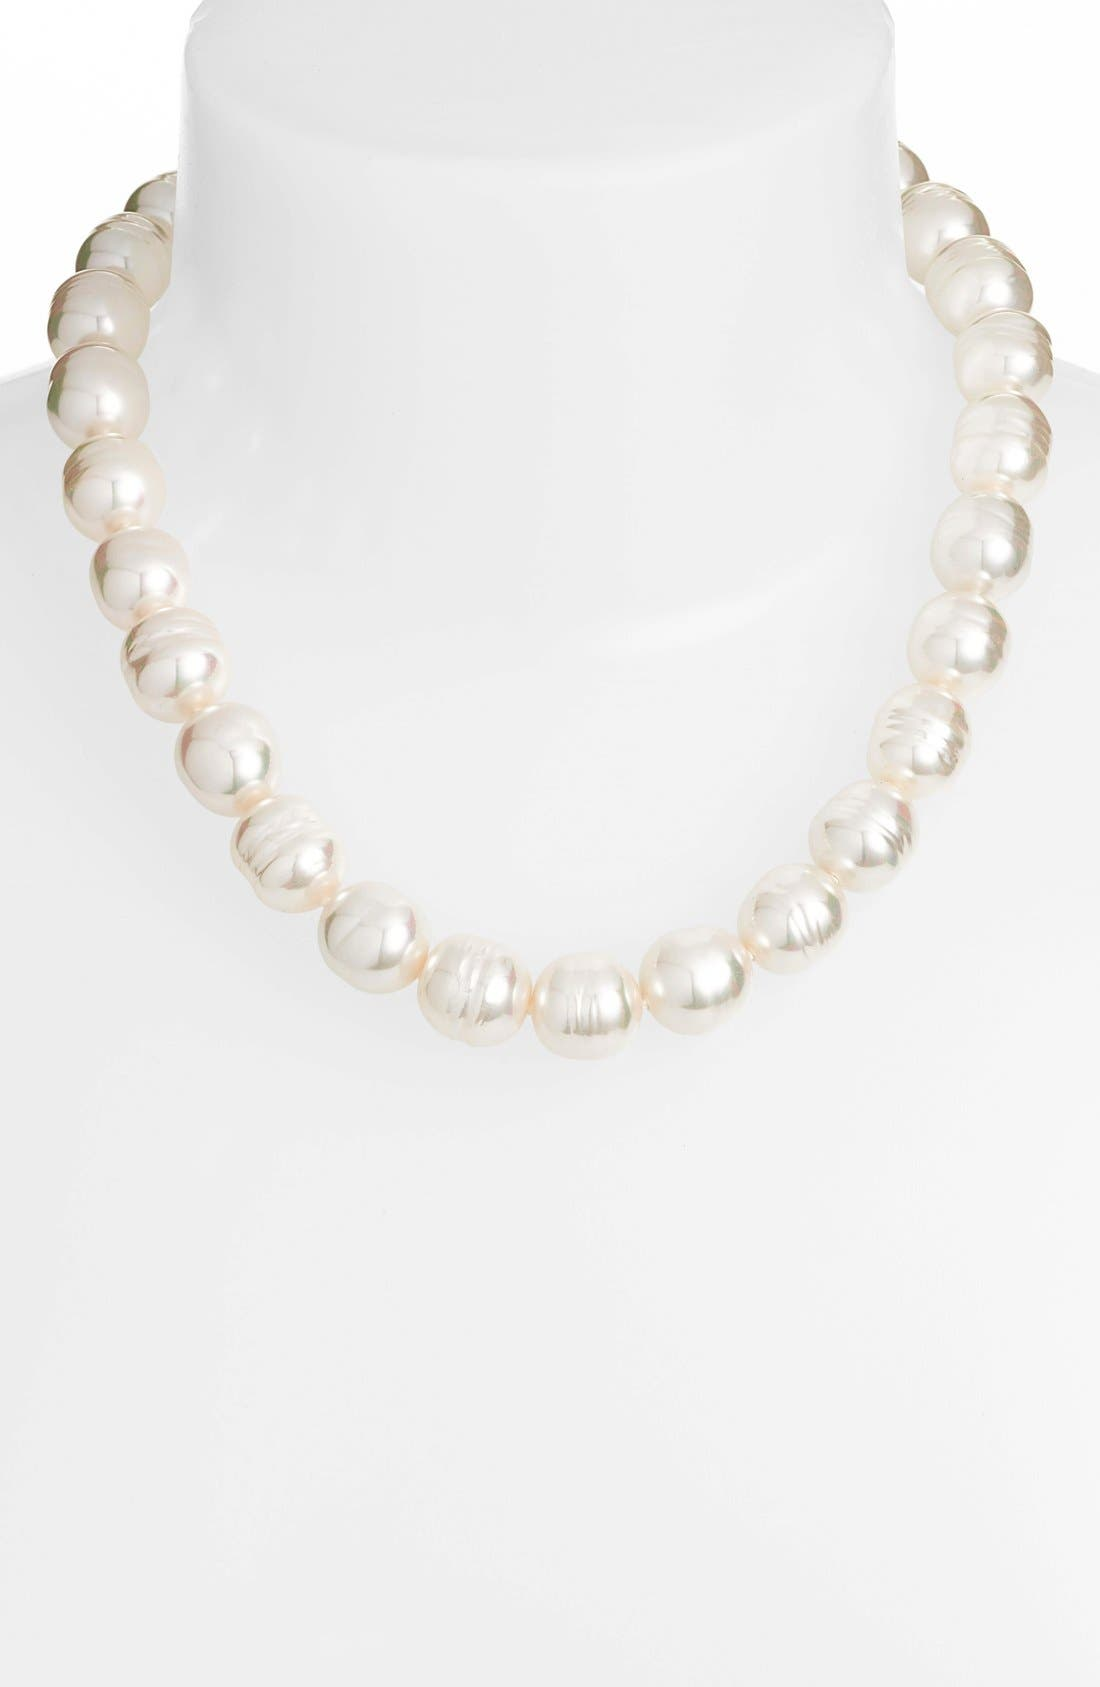 14mm Baroque Simulated Pearl Strand Necklace,                             Main thumbnail 1, color,                             100